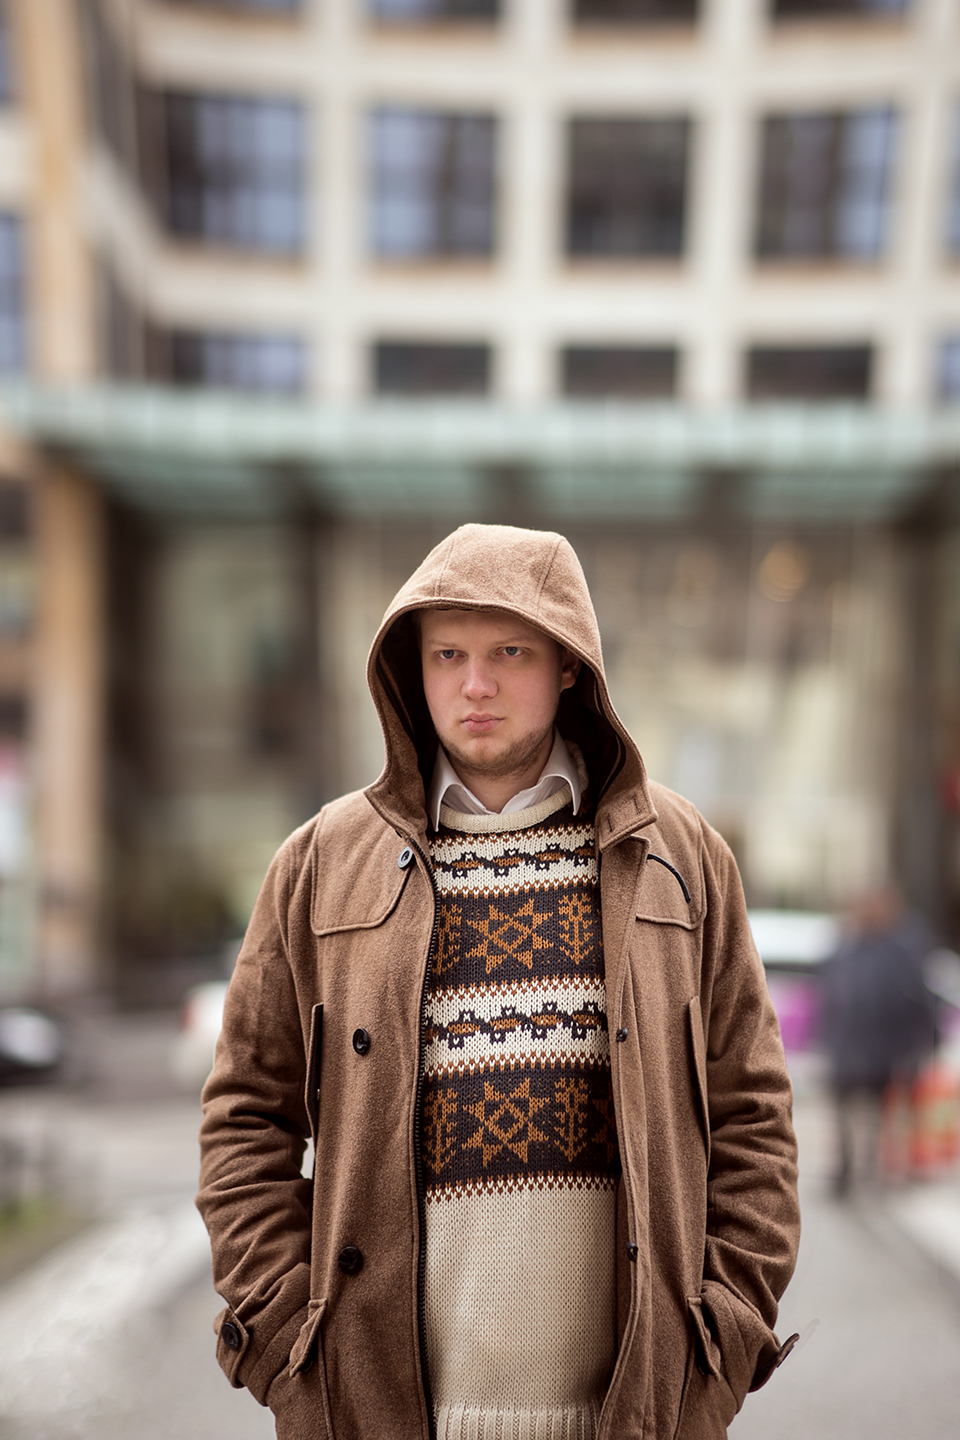 maenner-outfit-parka-winterboots-braun